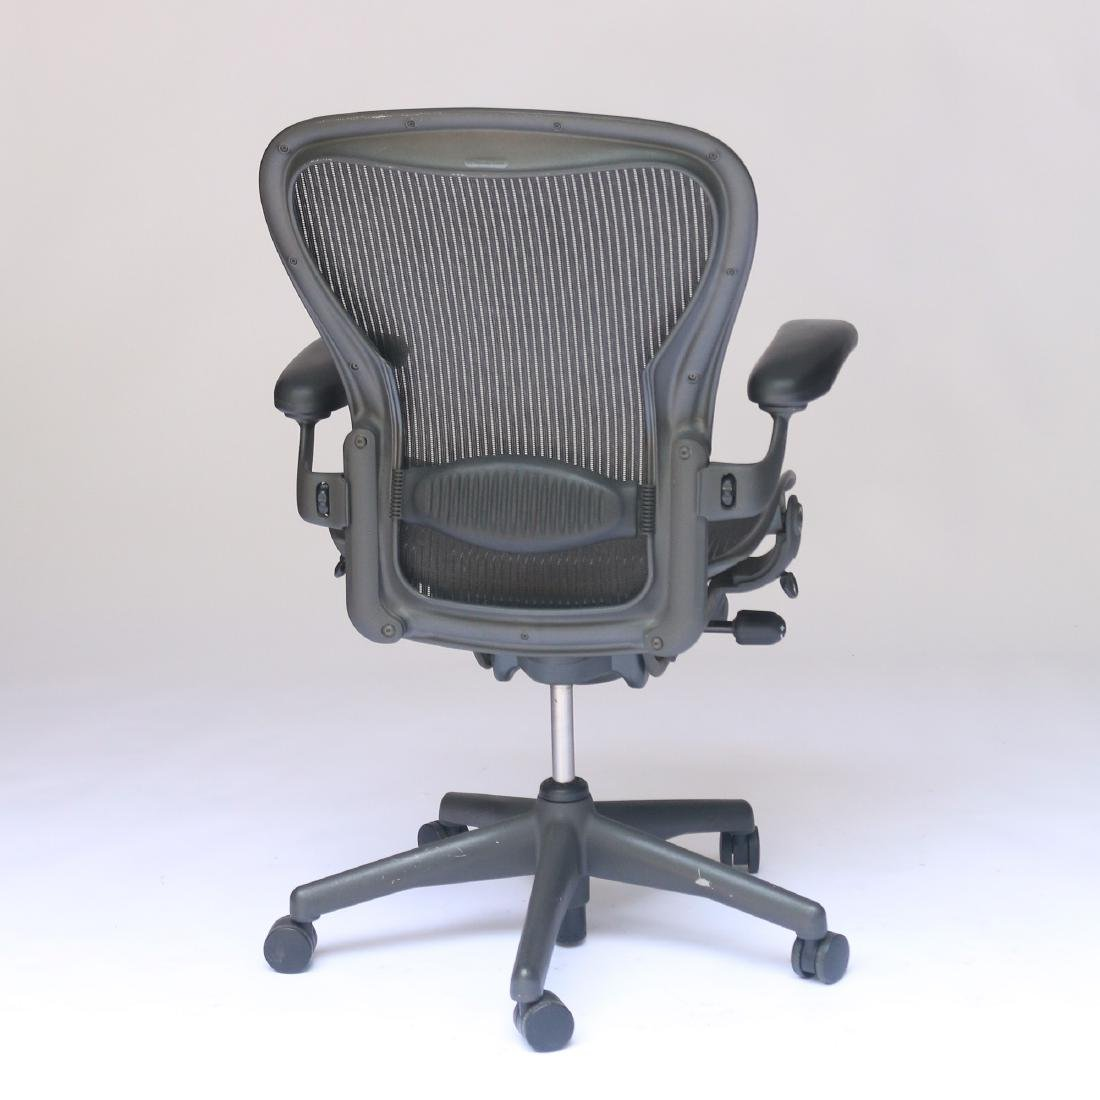 HERMAN MILLER AERON OFFICE CHAIR - 3